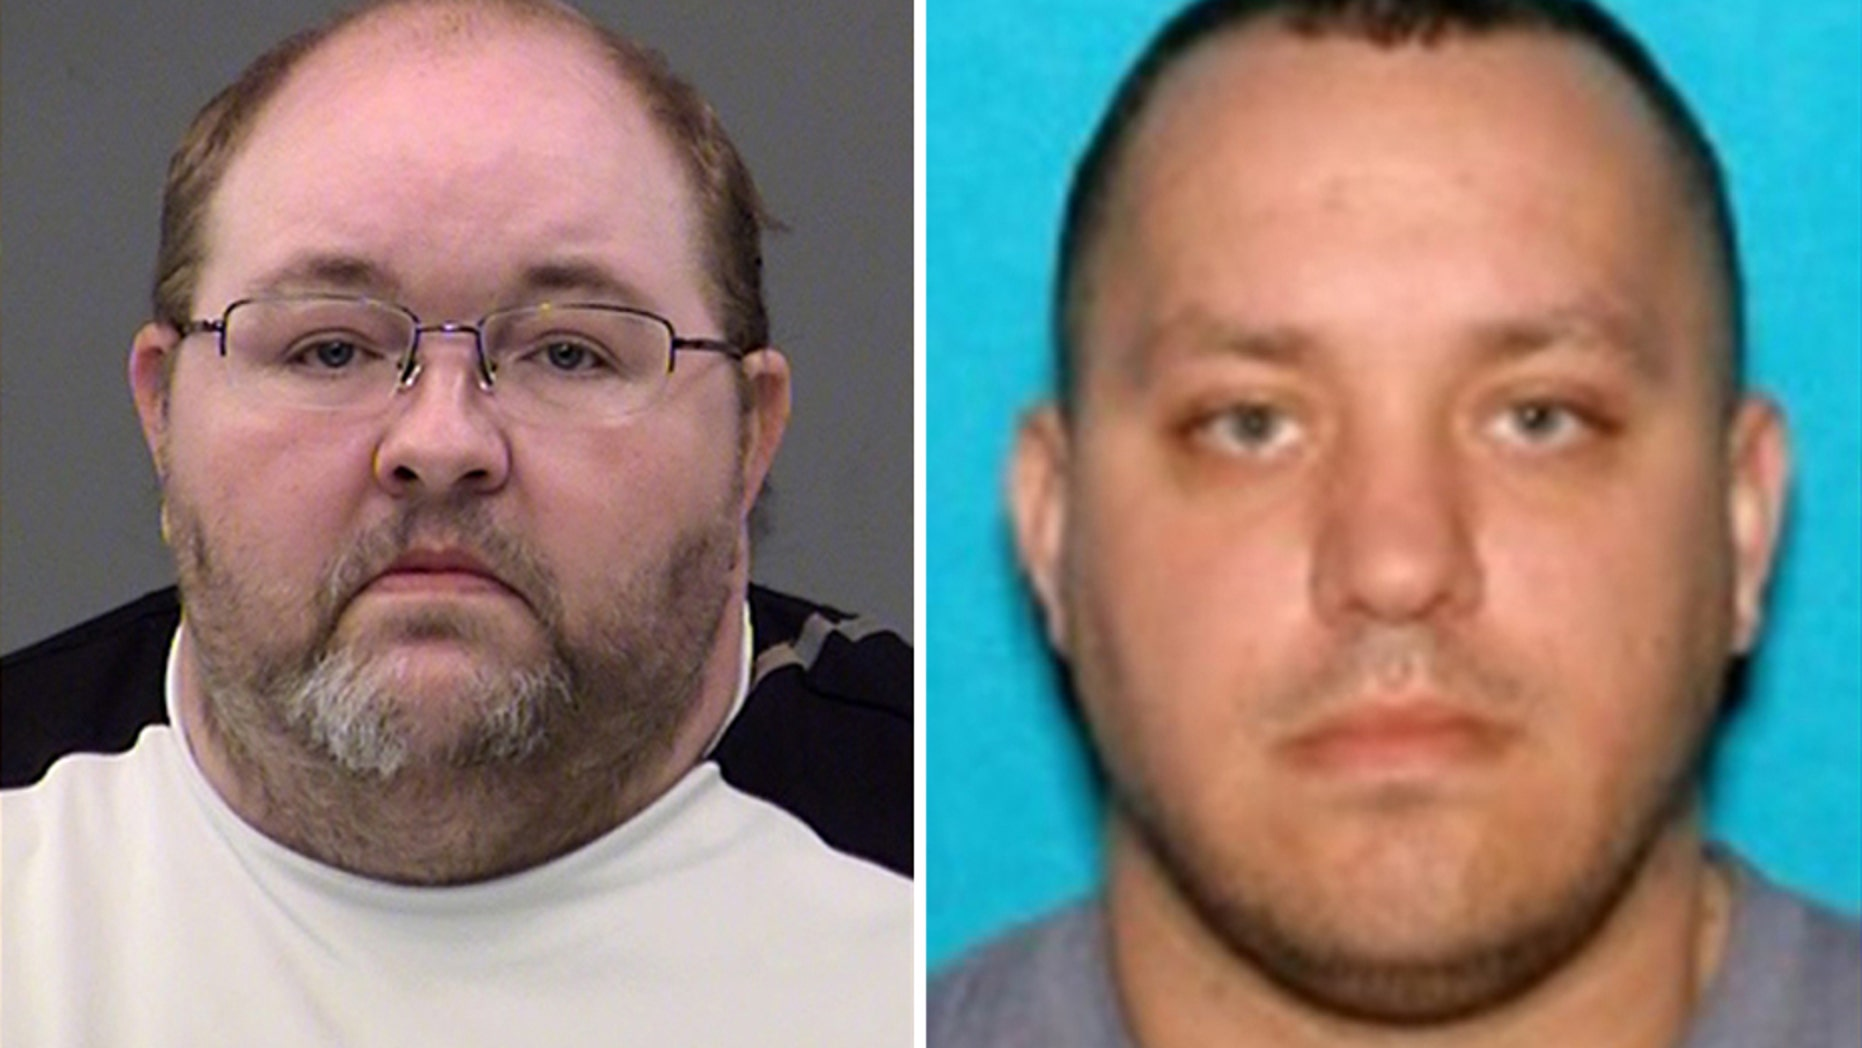 Dwight Shotts, 42, (left) was arrested on Monday after he reportedly called the police to admit to the murder of 35-year-old Anthony Cline (right), who was found shot in the  head in his bathtub.